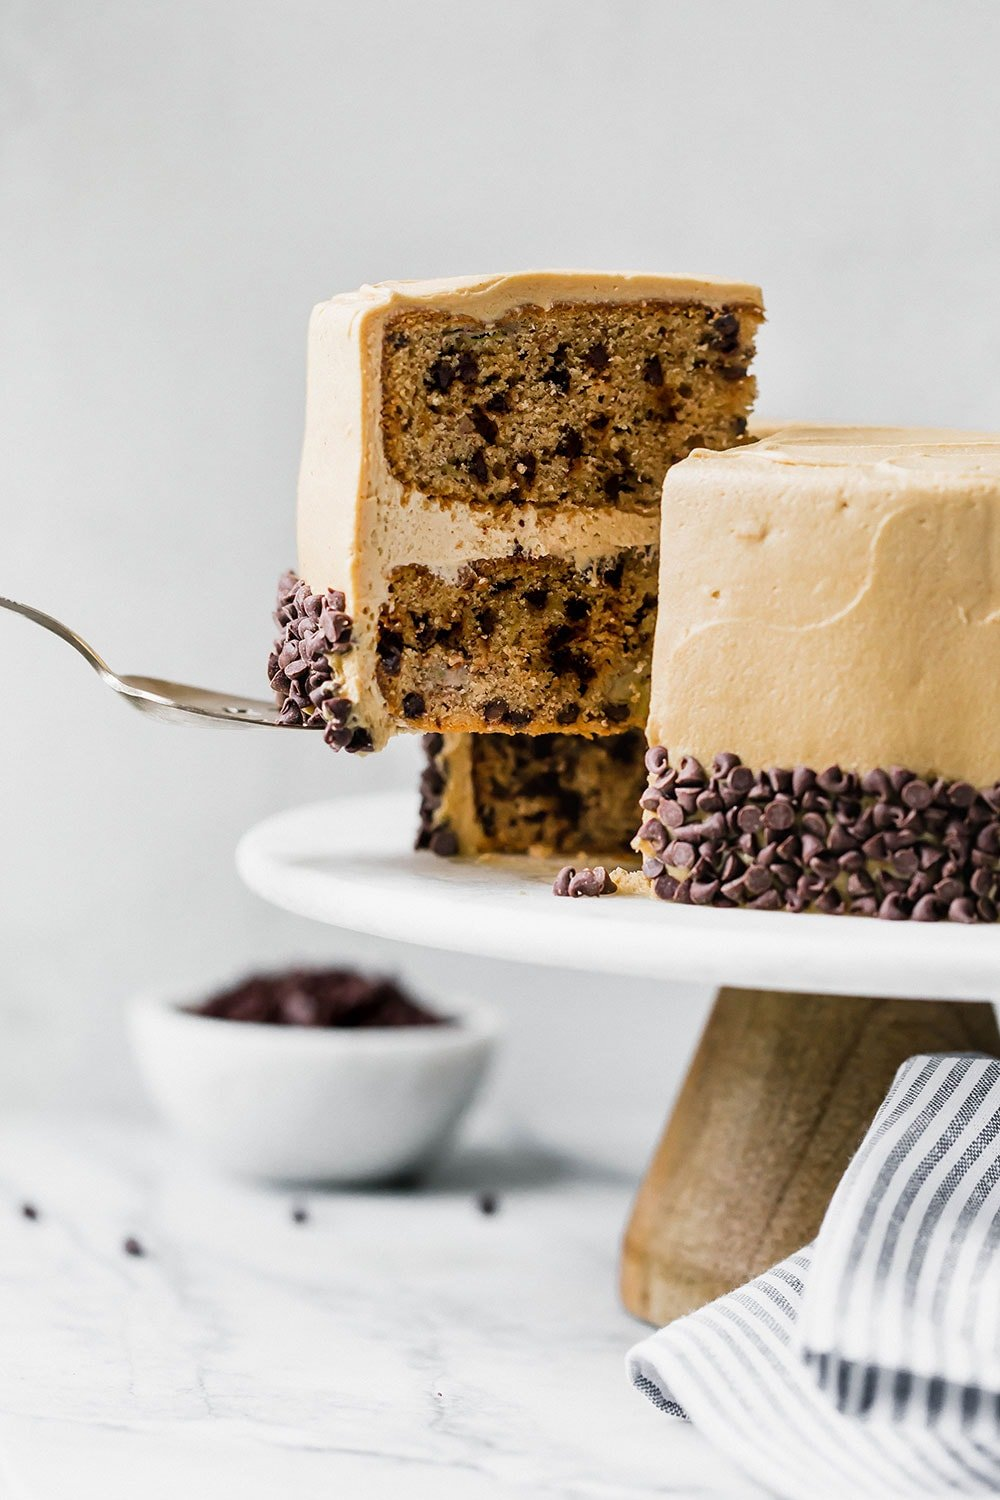 Bursting with sweet flavors, Banana Chocolate Chip Cake with Peanut Butter Frosting is a huge crowd-pleaser and better than any store-bought cake. Love!